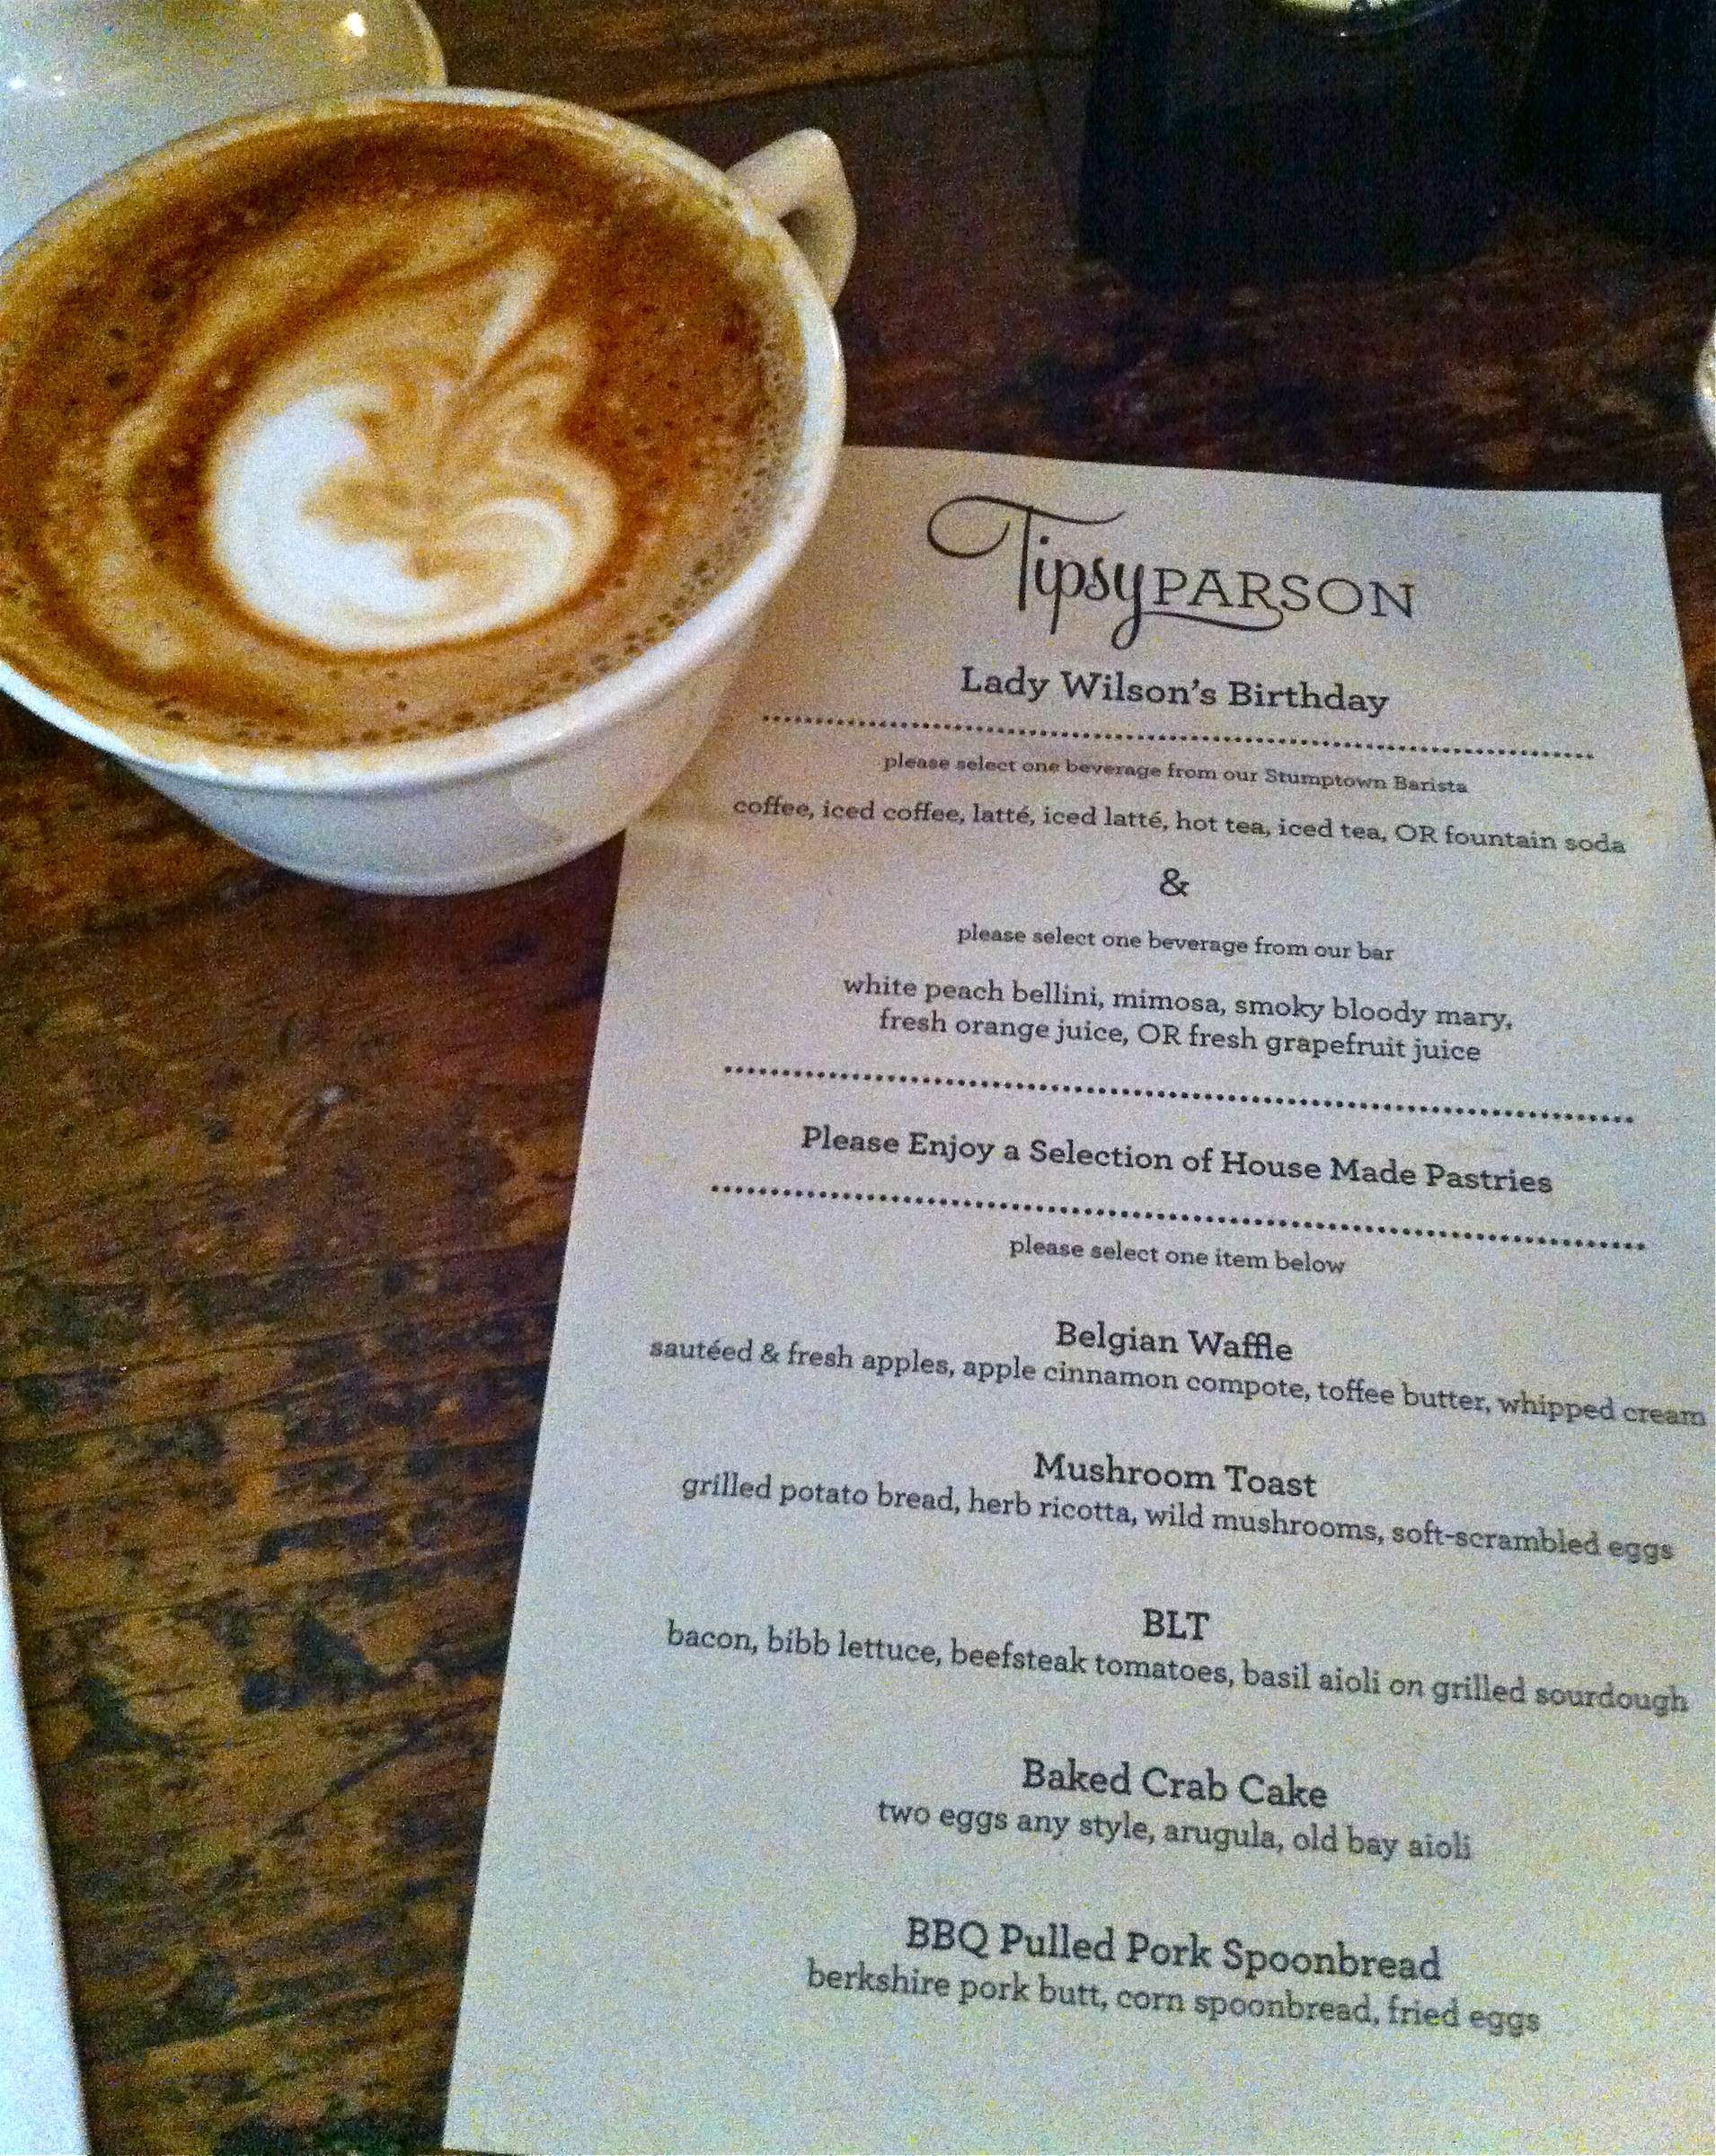 #TipsyParson #nyc #restaurants #brunch